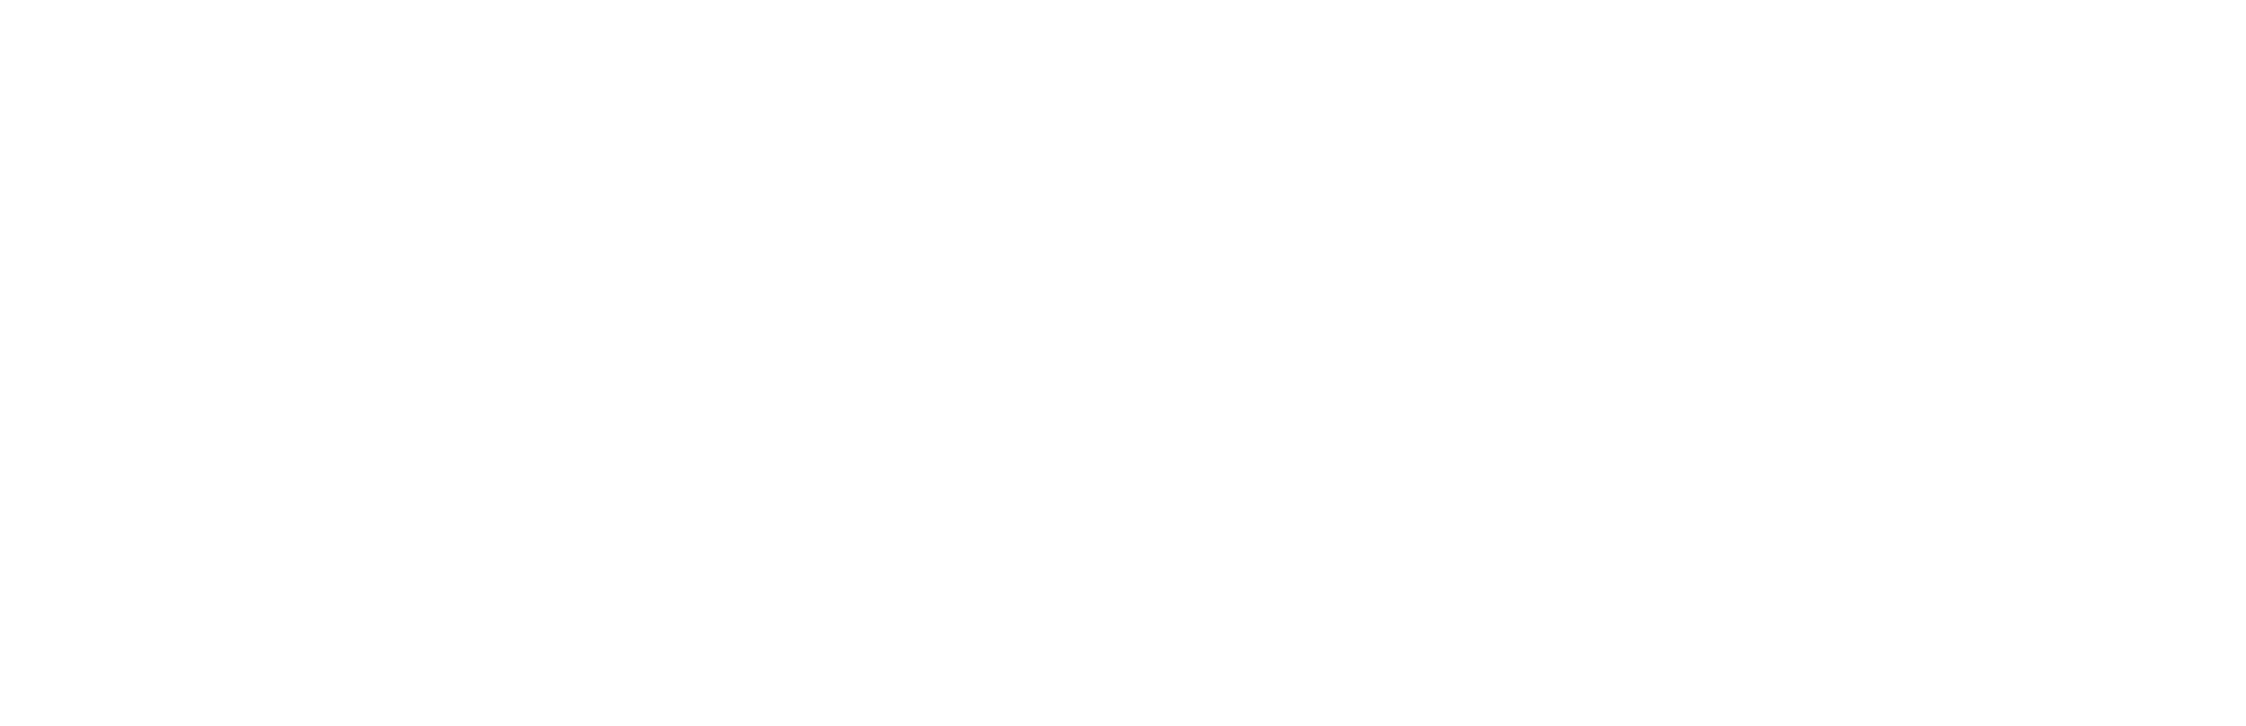 The Authentic Spanish Food in London – Meson Callejon